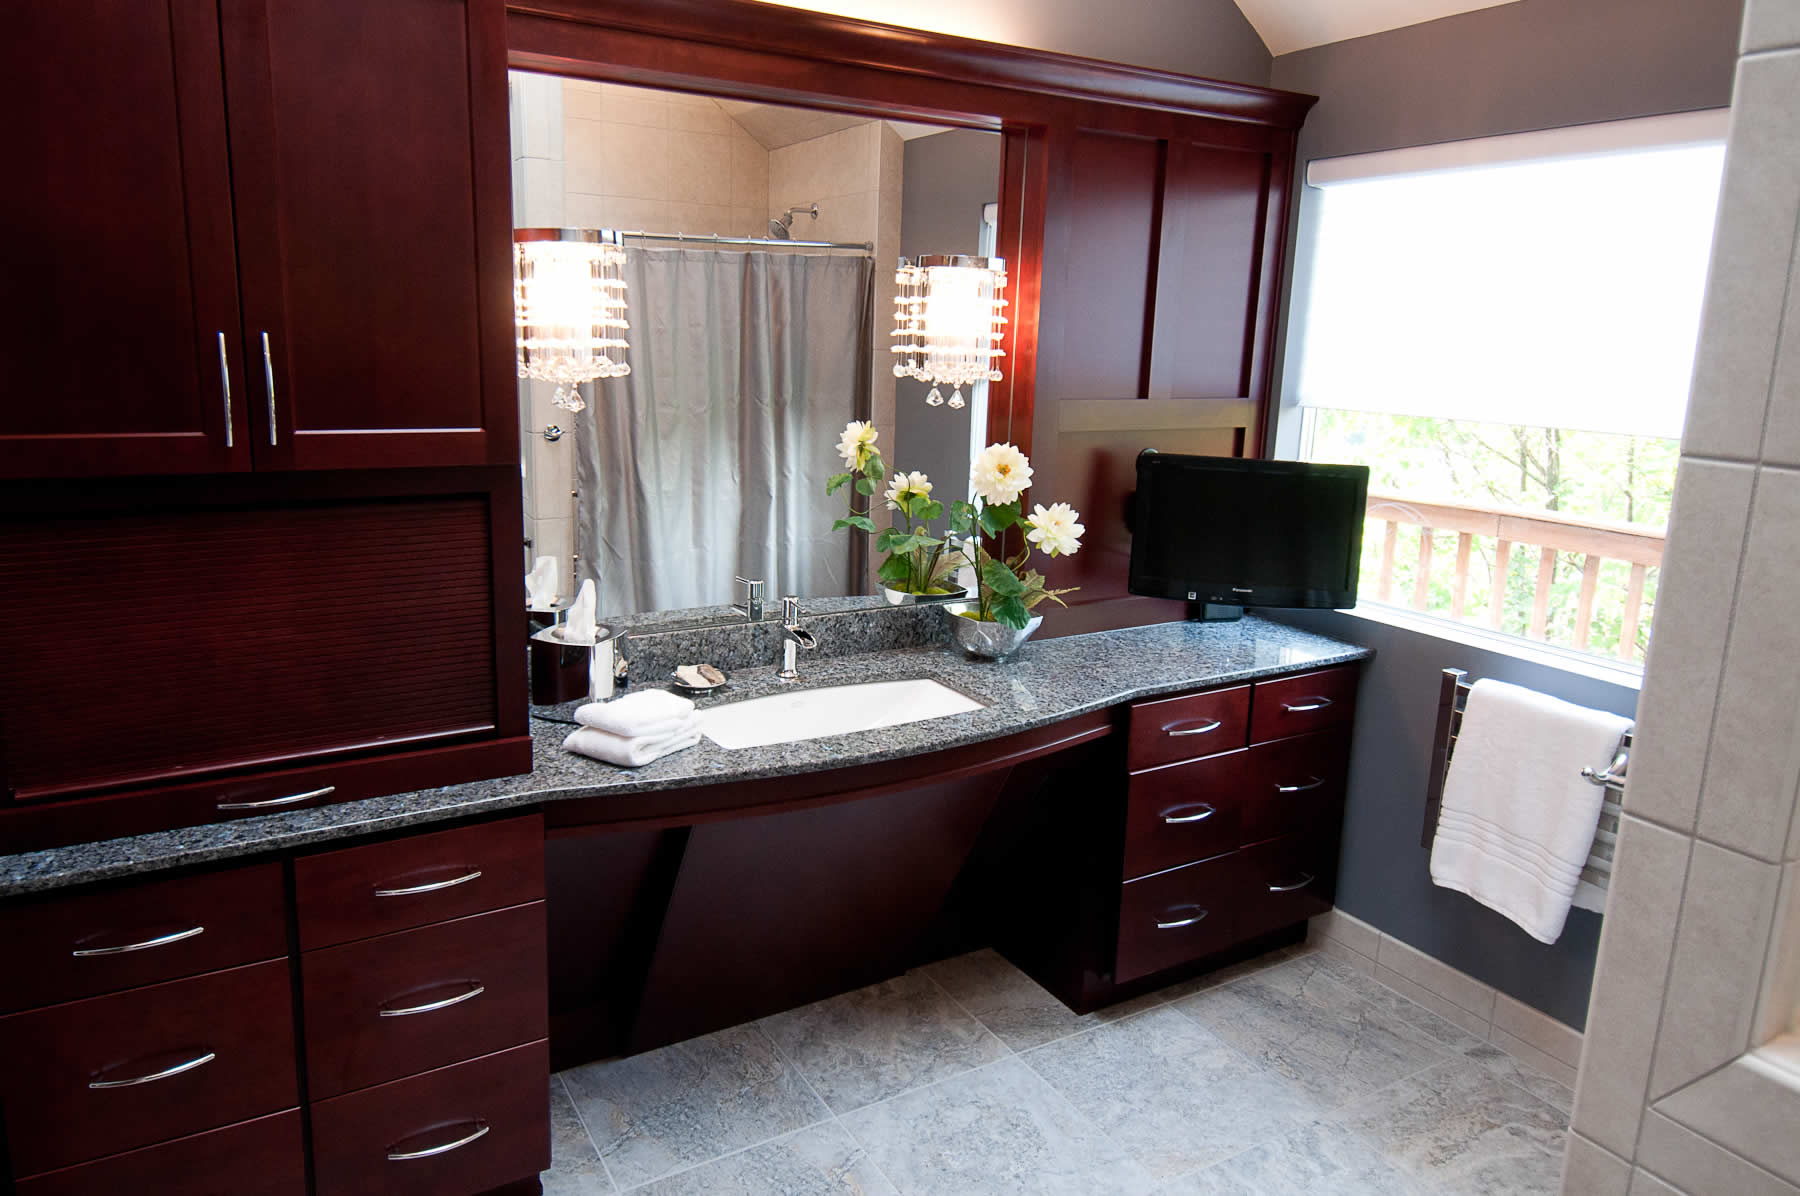 colorado bathroom size cumberlanddems of us cincinnati springs memphis bathrooms remodel design remodeling full